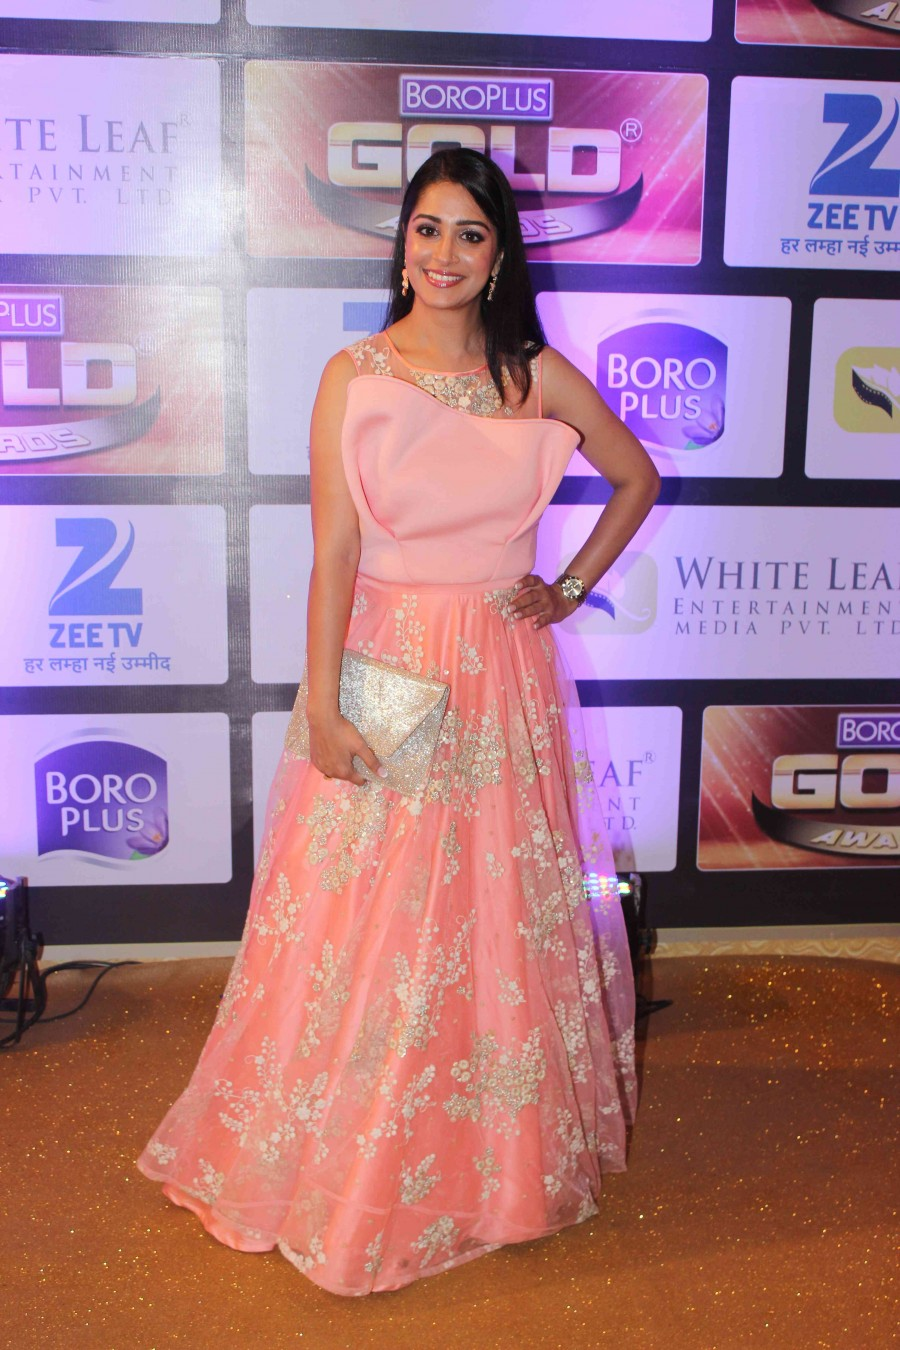 Zee Gold Awards,Zee Gold Awards 2016,Divyanka Tripathi,Gauahar Khan,Asha Negi,Jay Soni,Sidhant Gupta,Zee Gold Awards pics,Zee Gold Awards images,Zee Gold Awards photos,Zee Gold Awards stills,Zee Gold Awards pictures